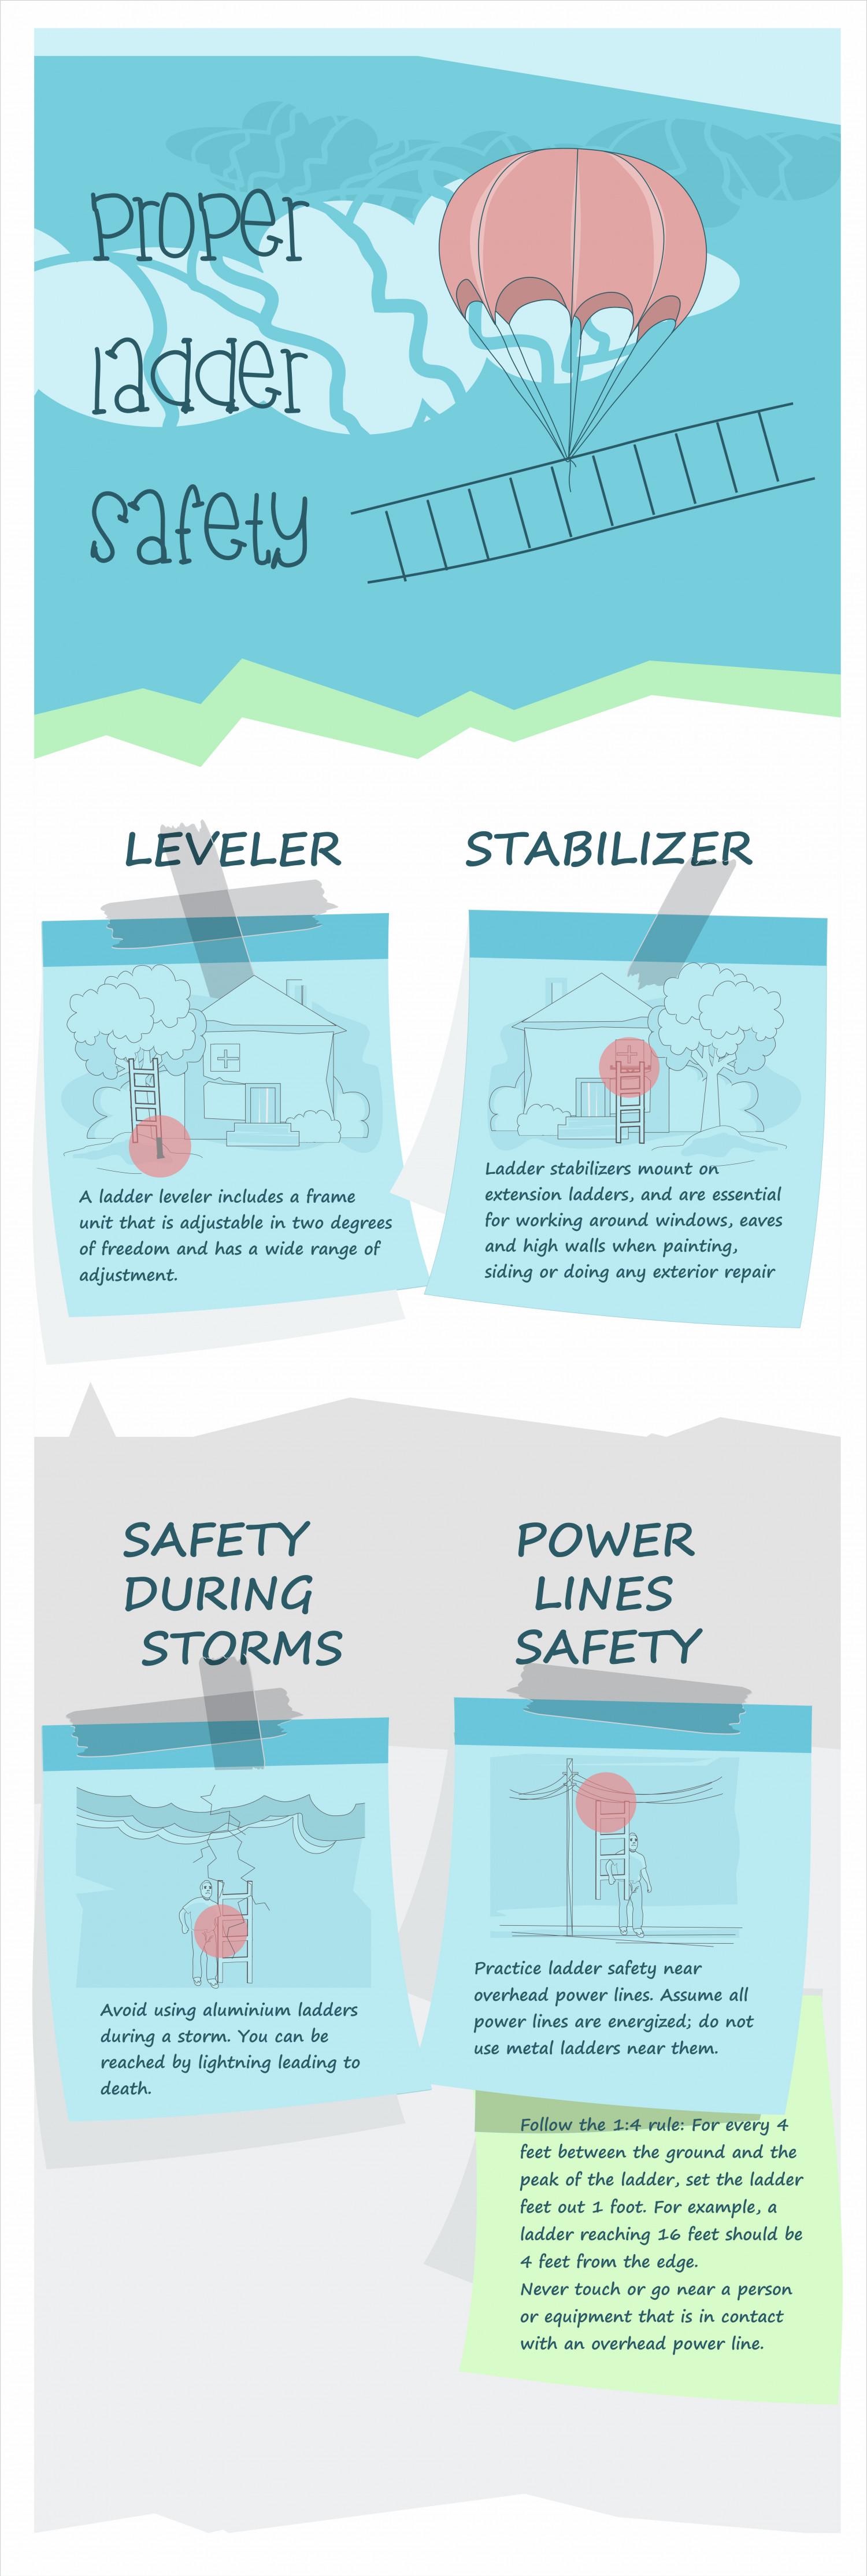 Proper Ladder Safety Infographic